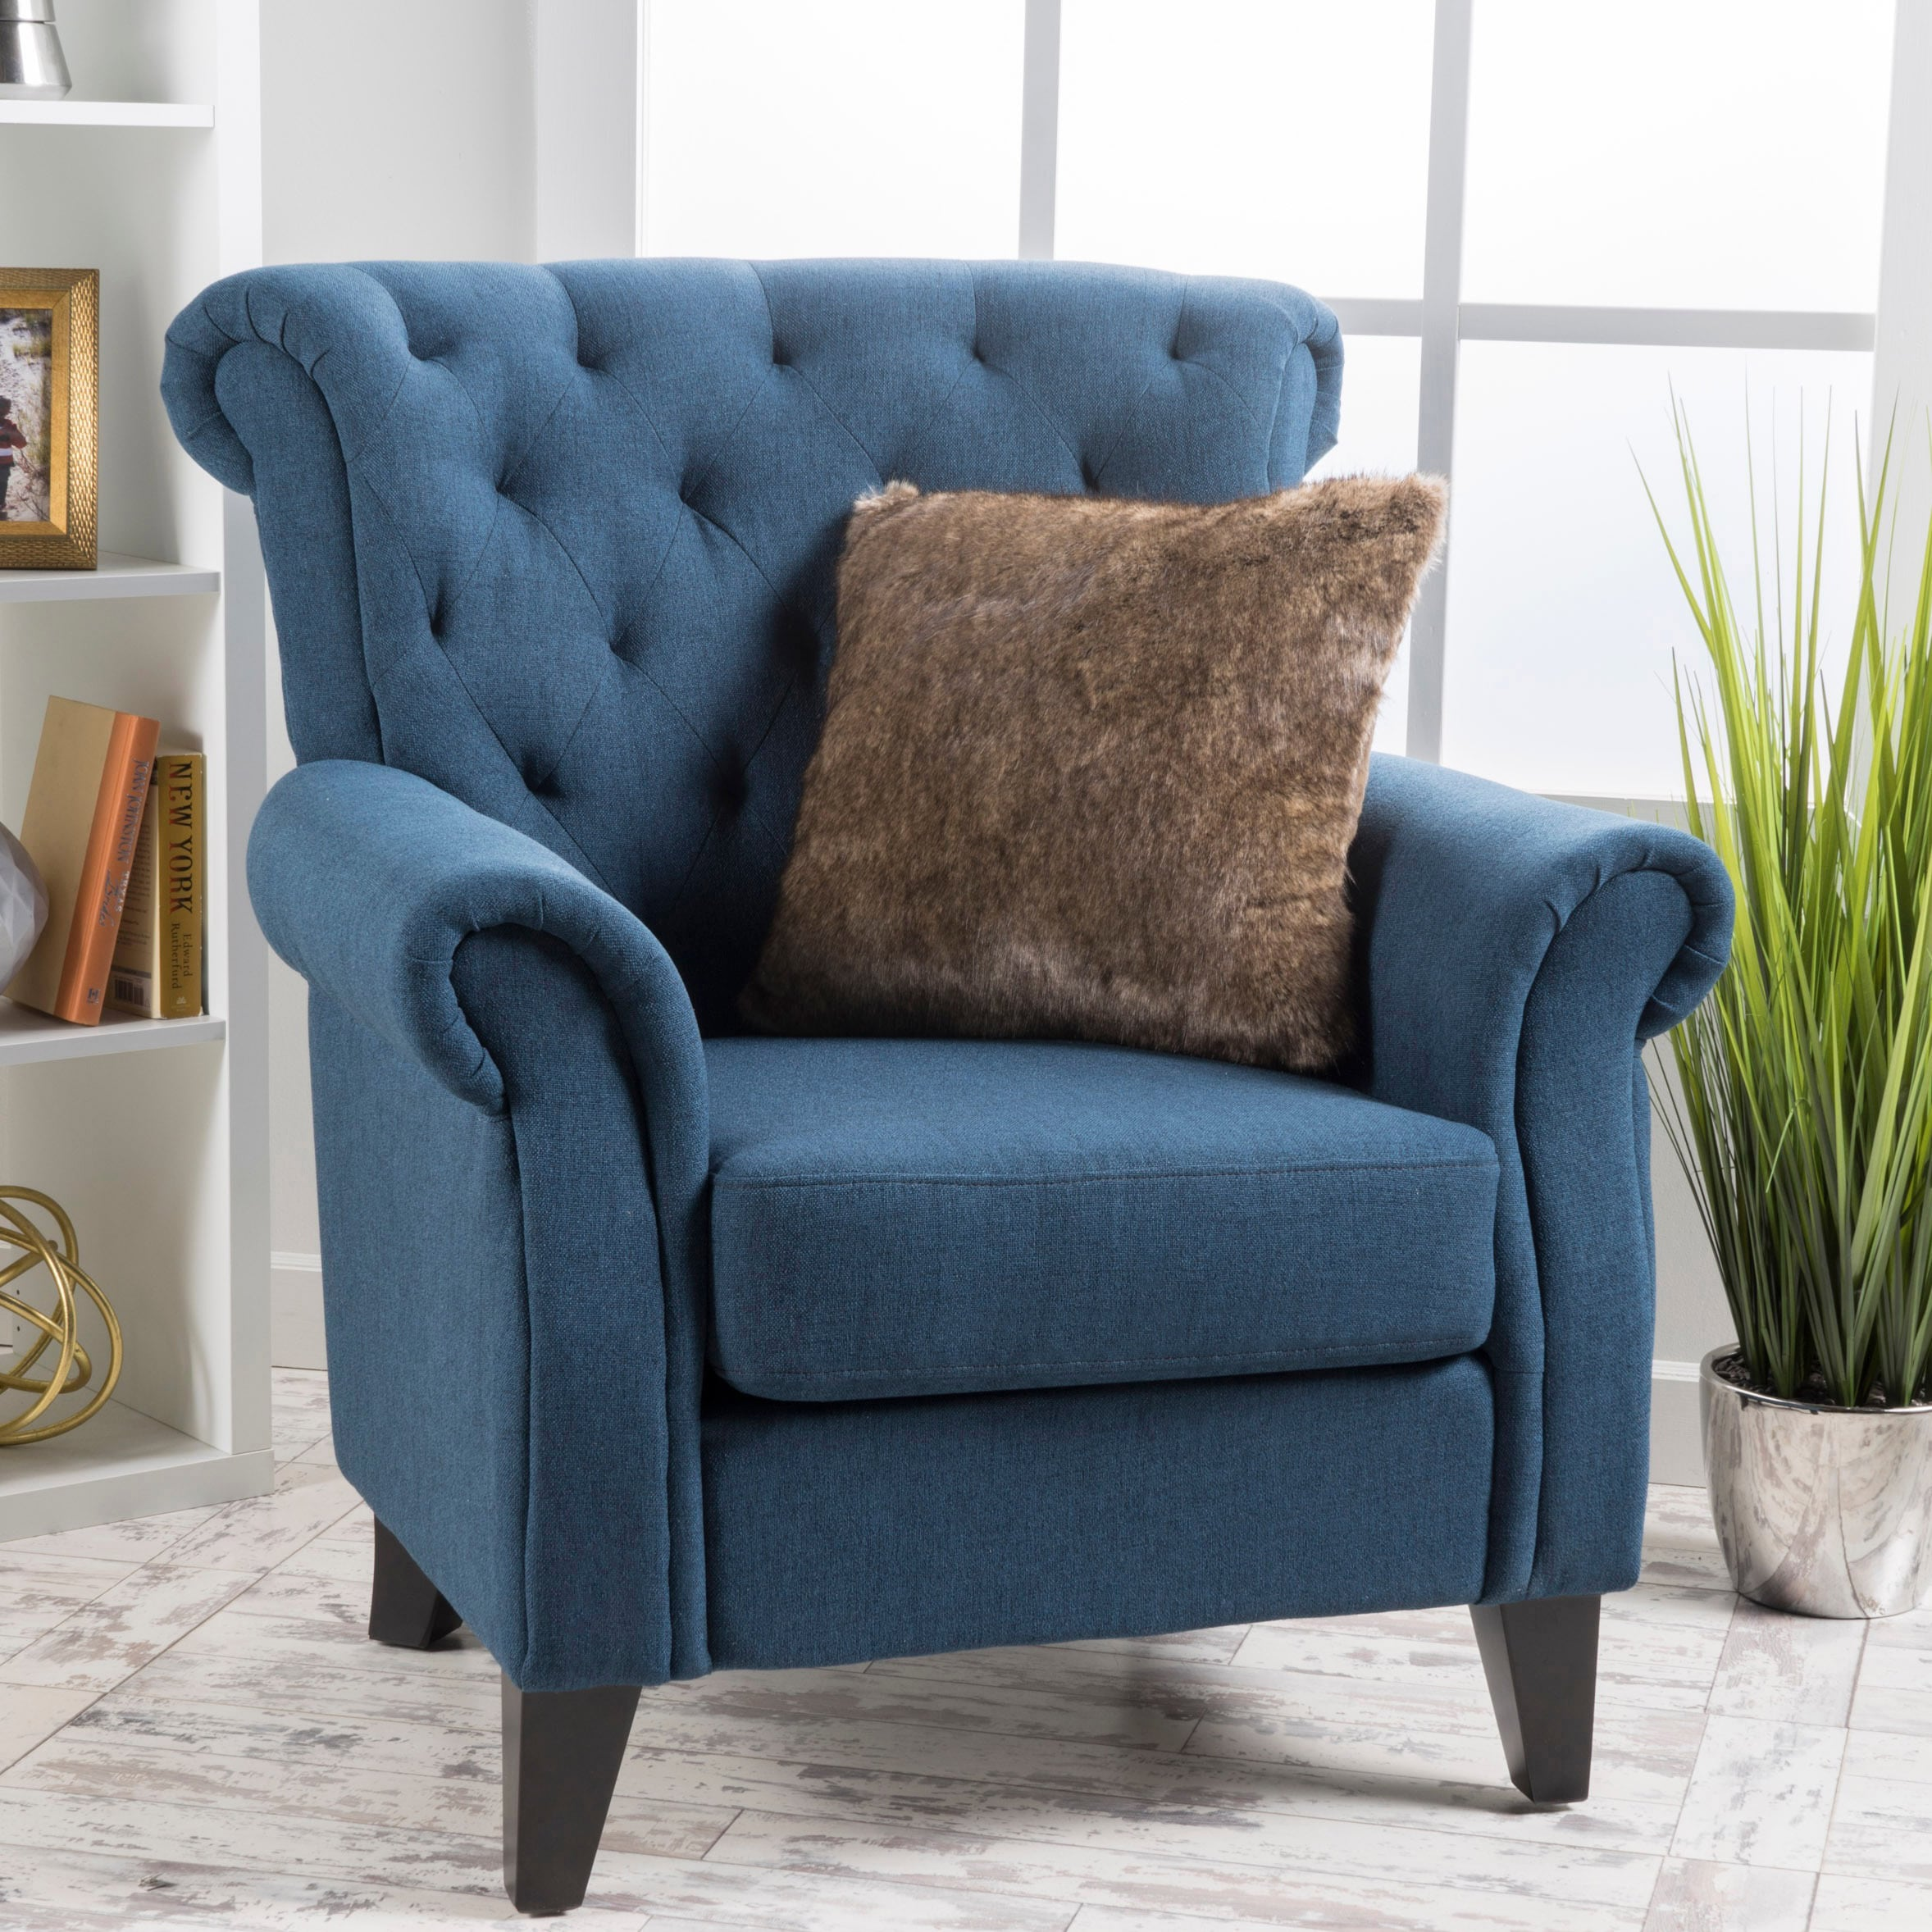 christopher knight club chair shower vs tub transfer bench merritt high back tufted fabric by